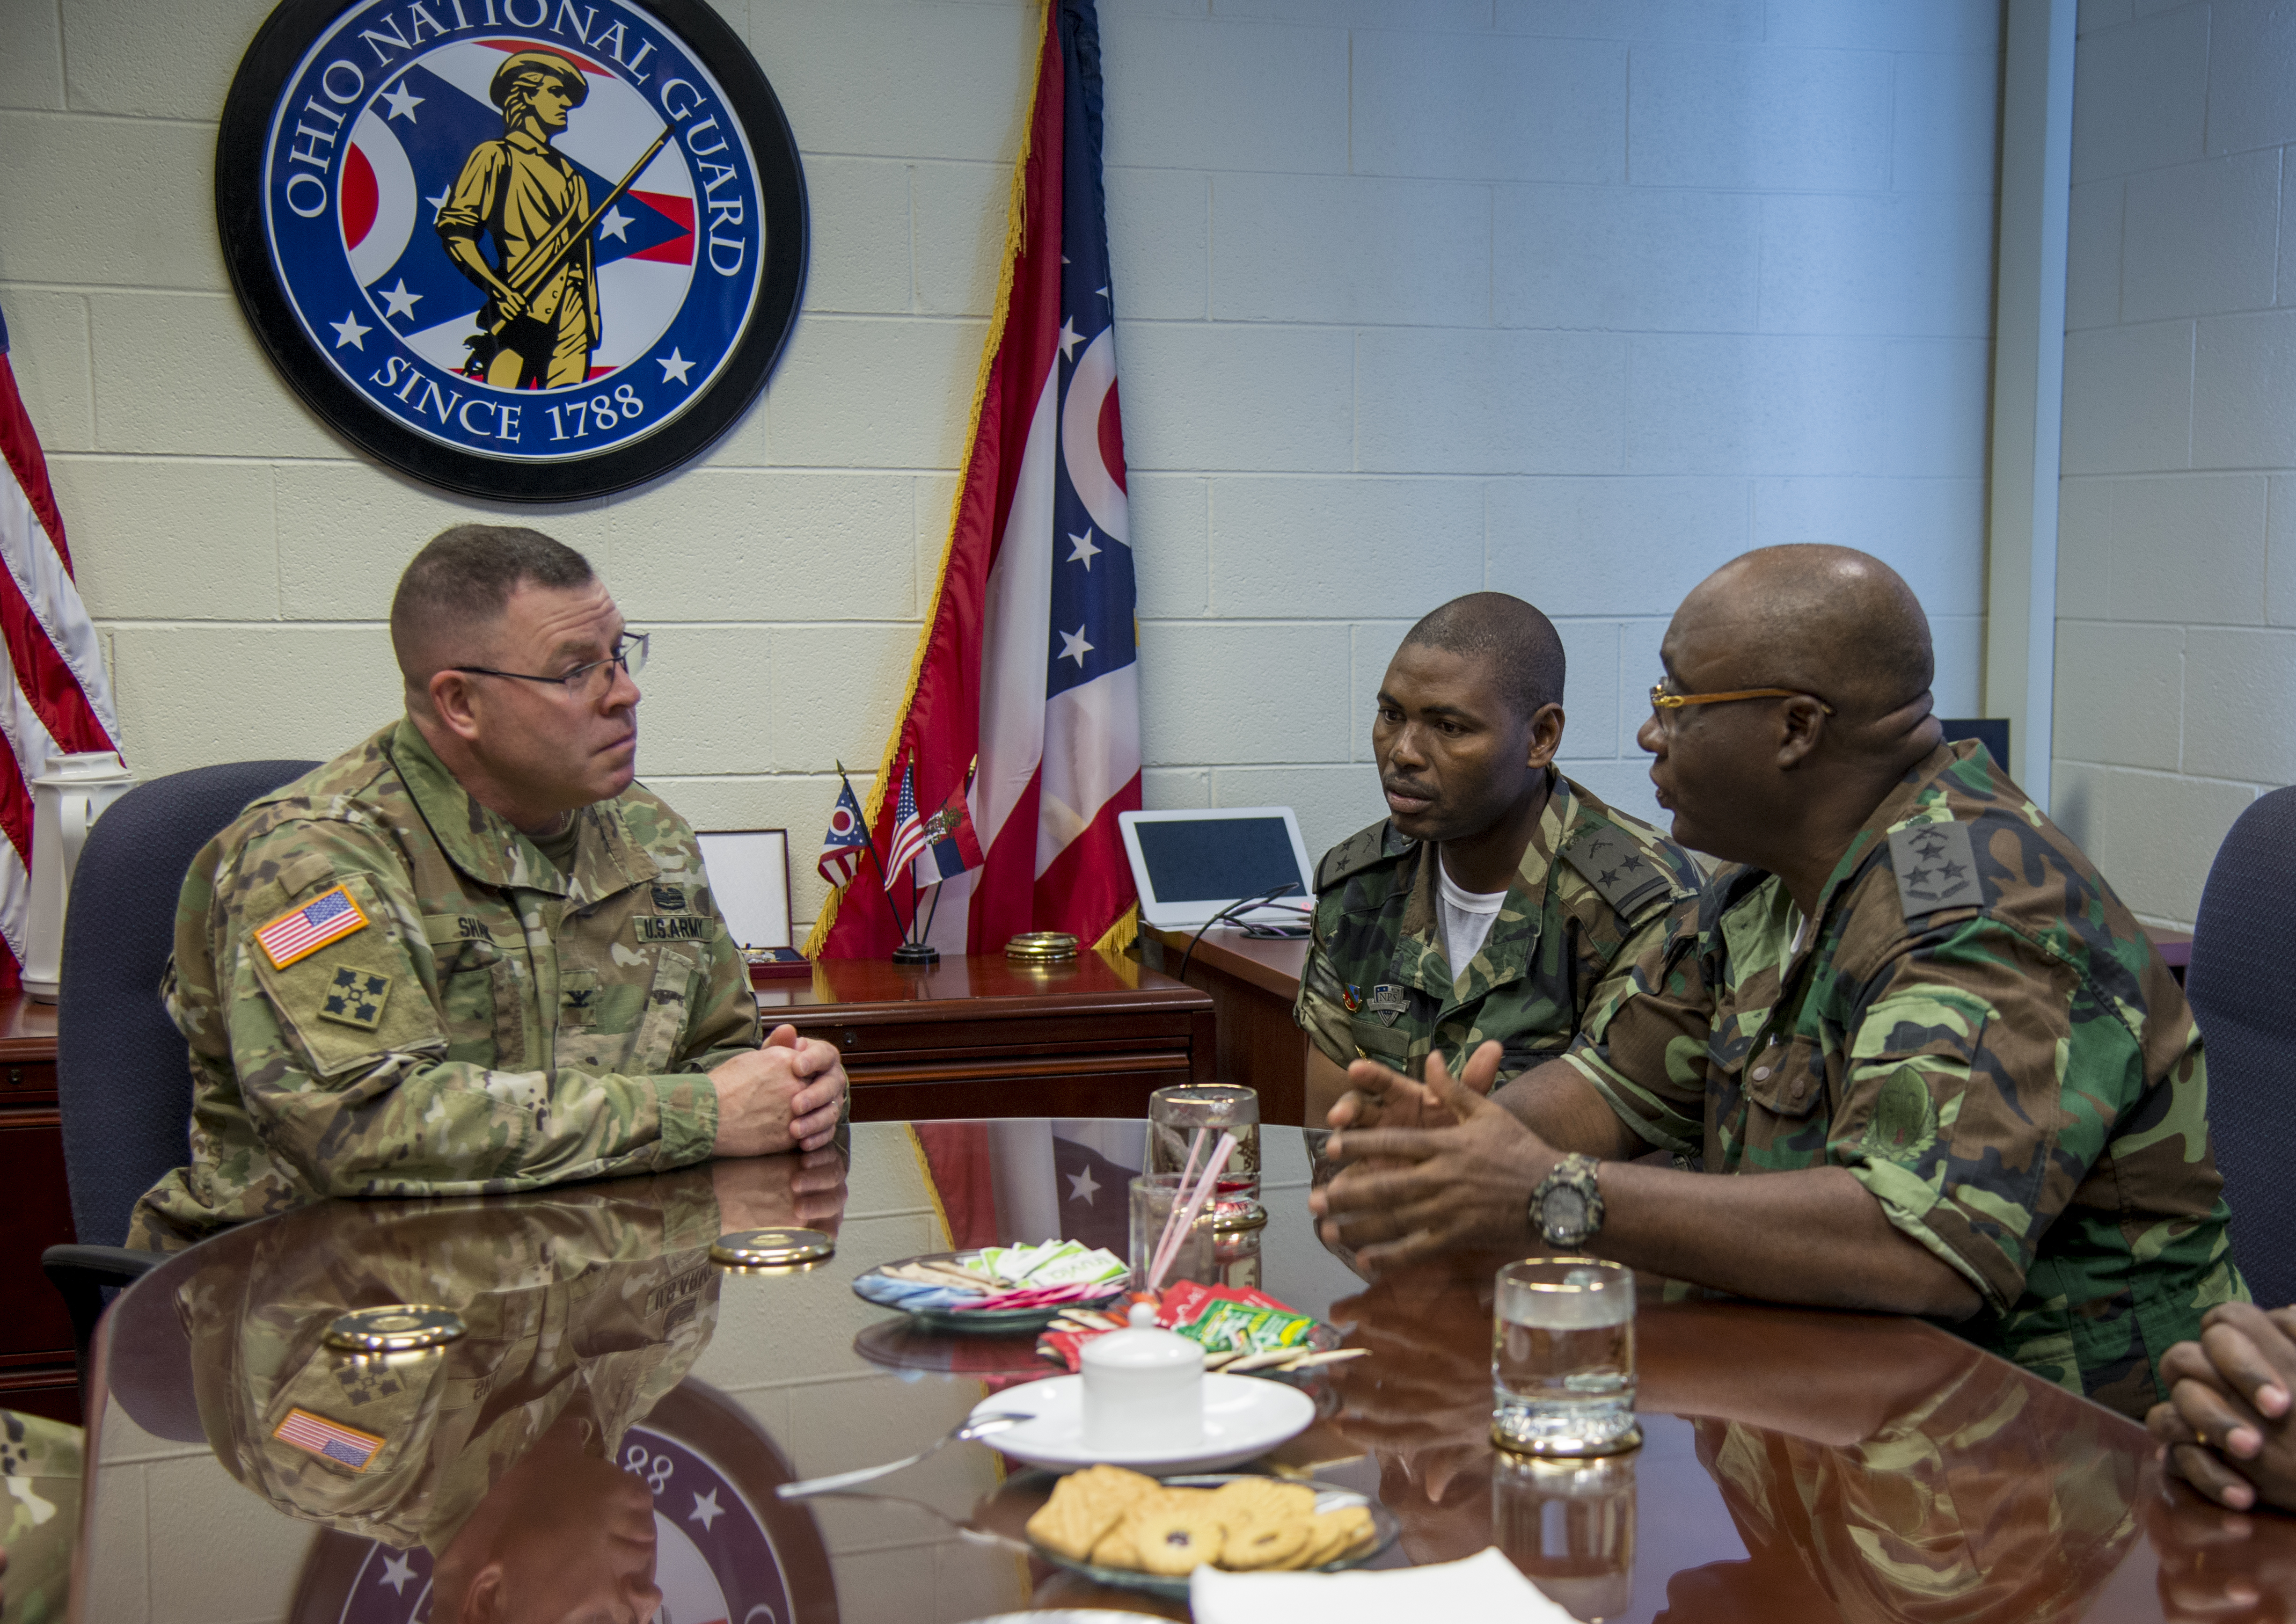 Gen. Jaques Raul (from right), deputy land forces commander of the Angolan Armed Forces, and Lt. Col. Pedro Receado, Raul's executive officer, meet with Col. Daniel Shank, Ohio assistant adjutant general for Army, at the Maj. Gen. Robert S. Beightler Armory in Columbus, Ohio, June 4, 2019. The State Partnership Program hosted the delegation at the request of U.S. Army Africa, enabling meetings and discussions between Angolan military and Ohio National Guard leadership.